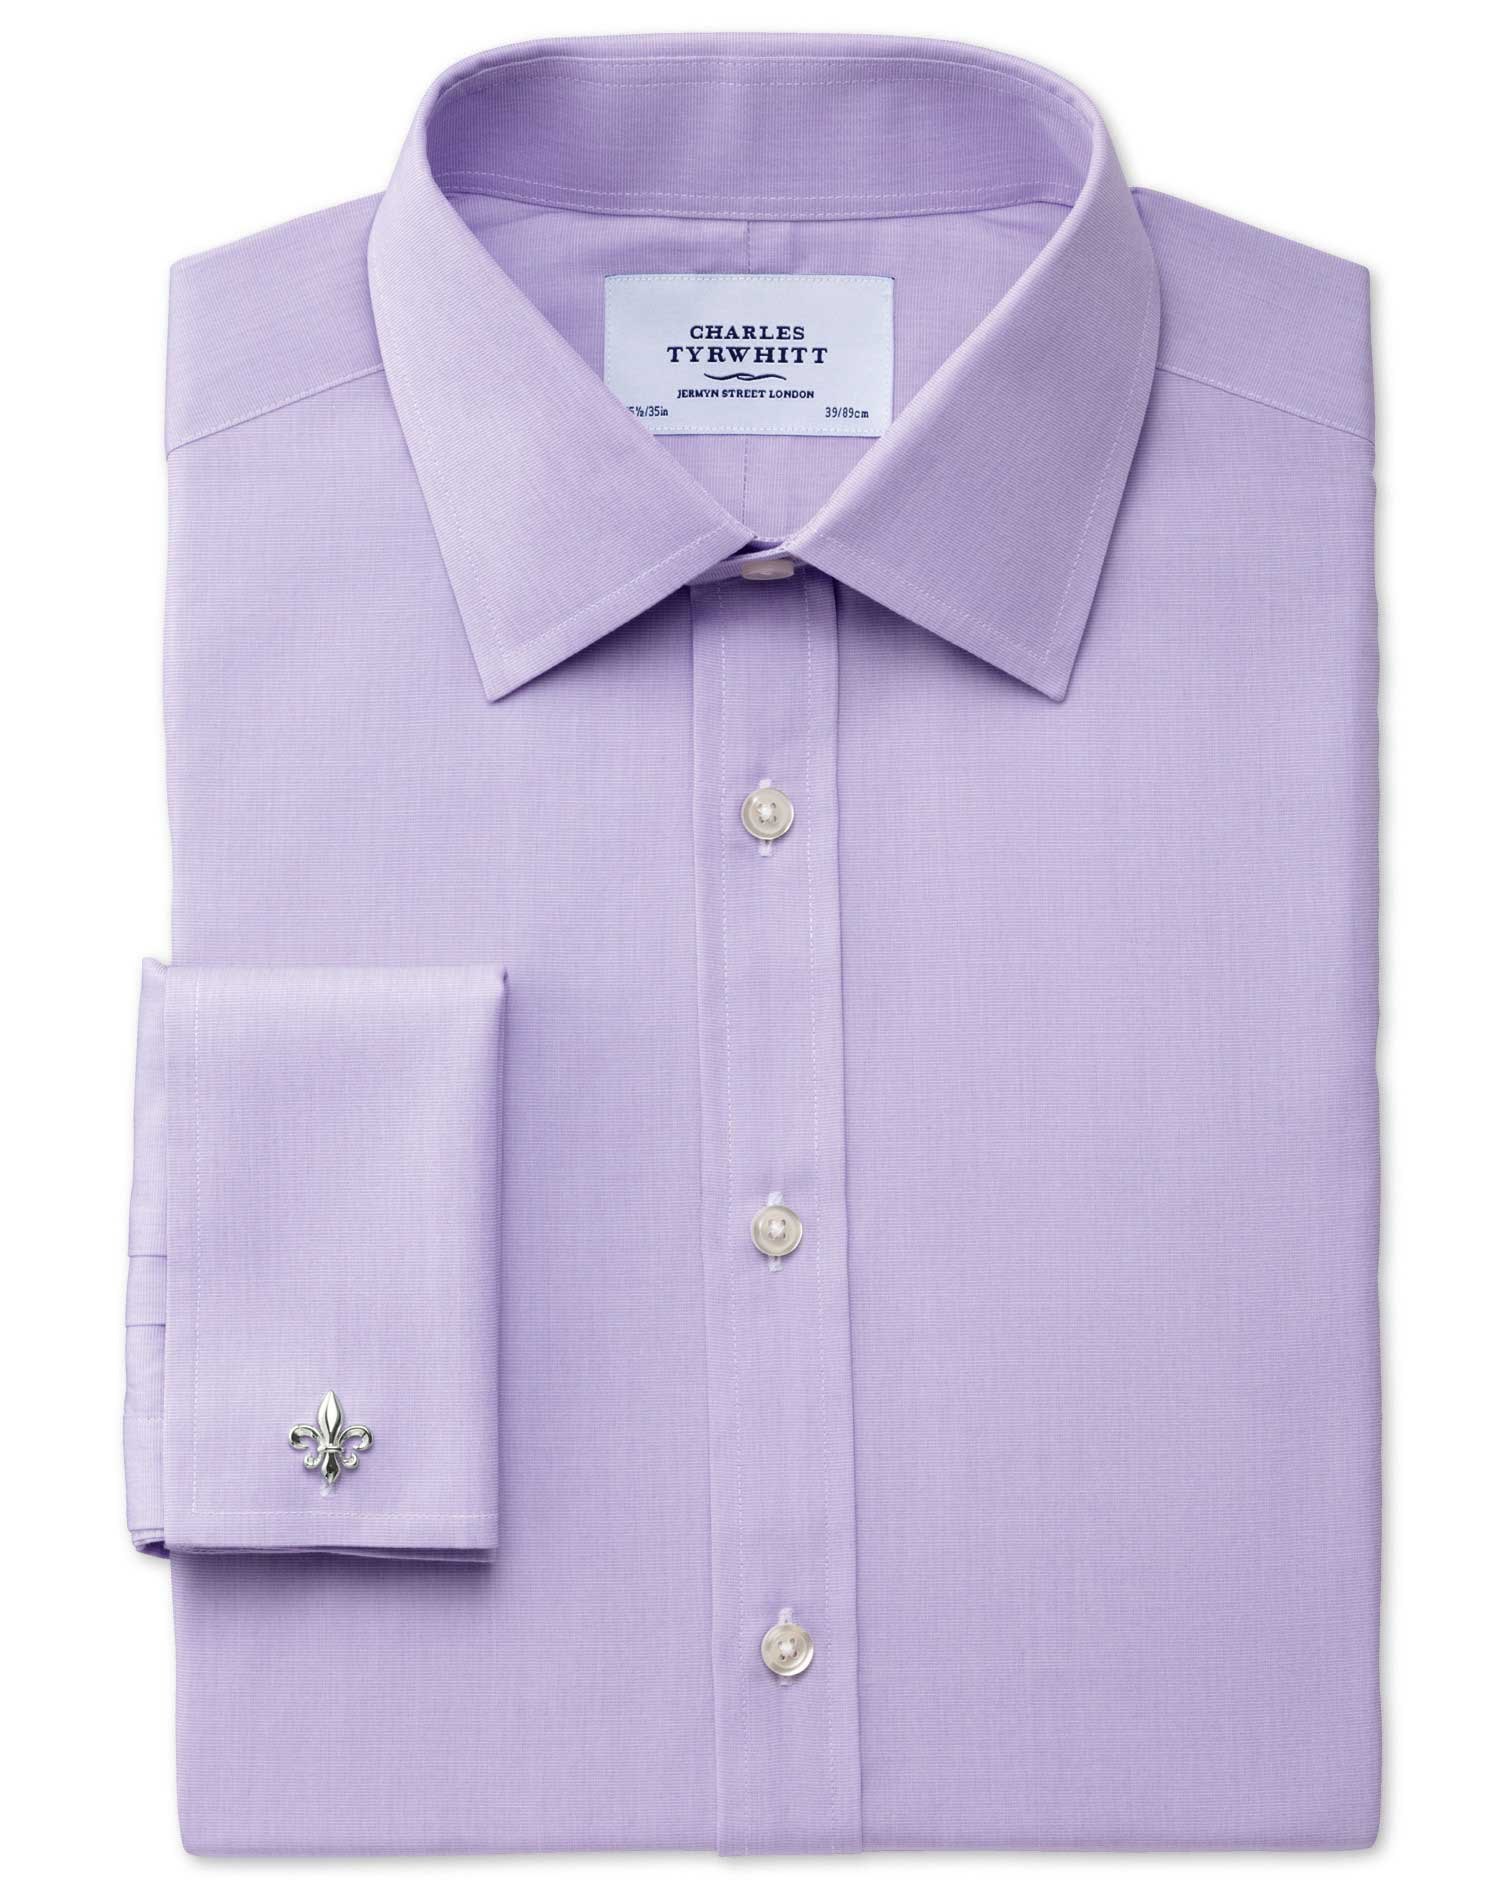 Classic Fit End-On-End Lilac Cotton Formal Shirt Double Cuff Size 17/38 by Charles Tyrwhitt